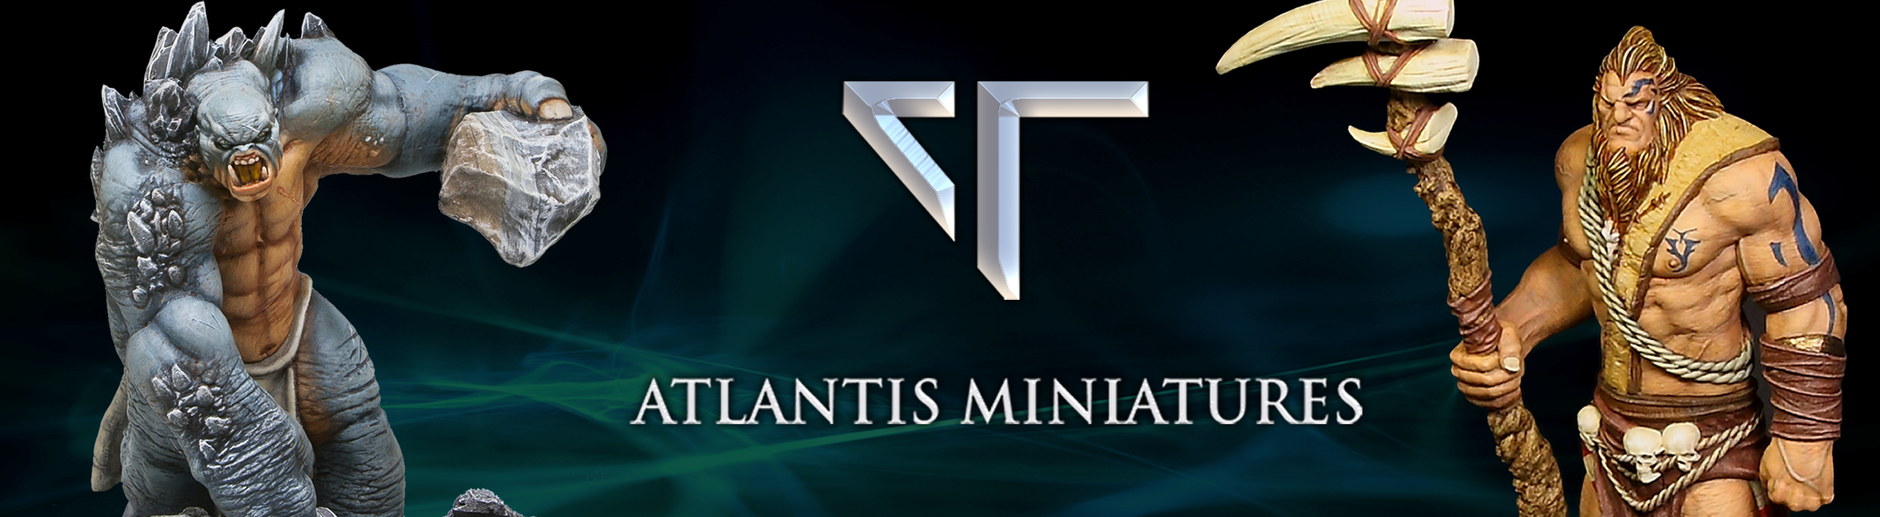 Atlantis Miniatures